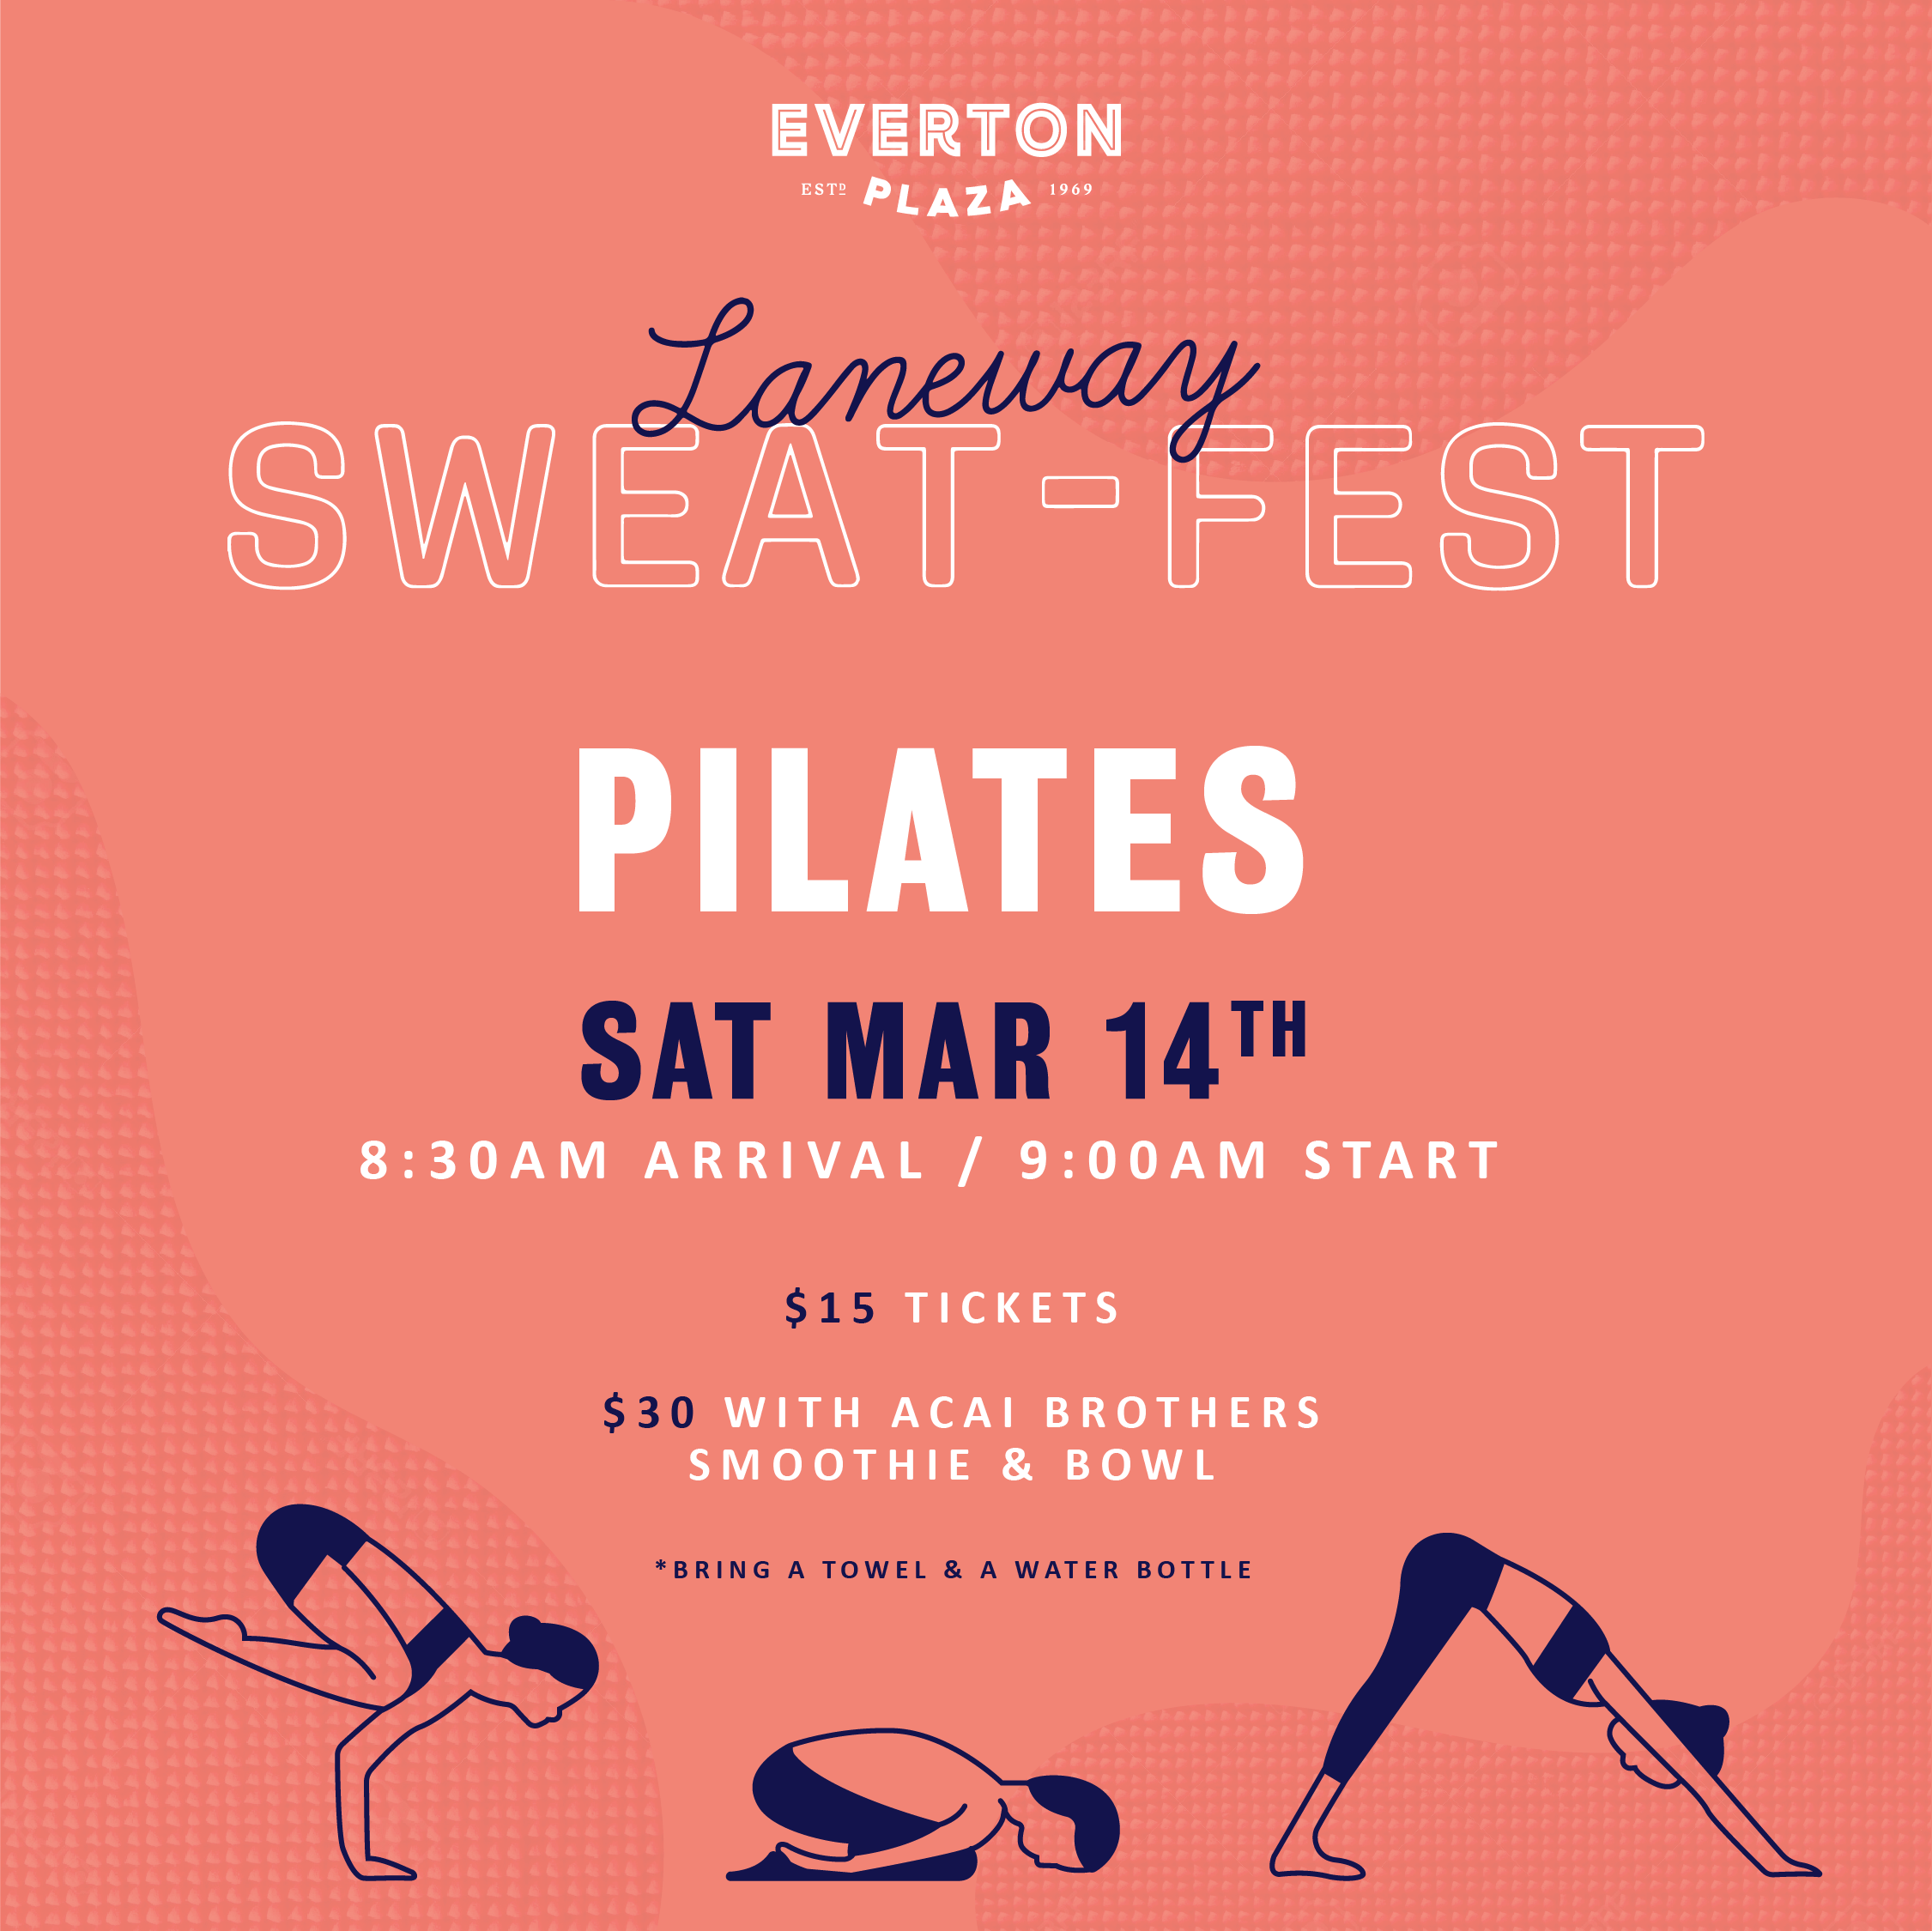 Featured Image For: Laneway Sweat Fest:…